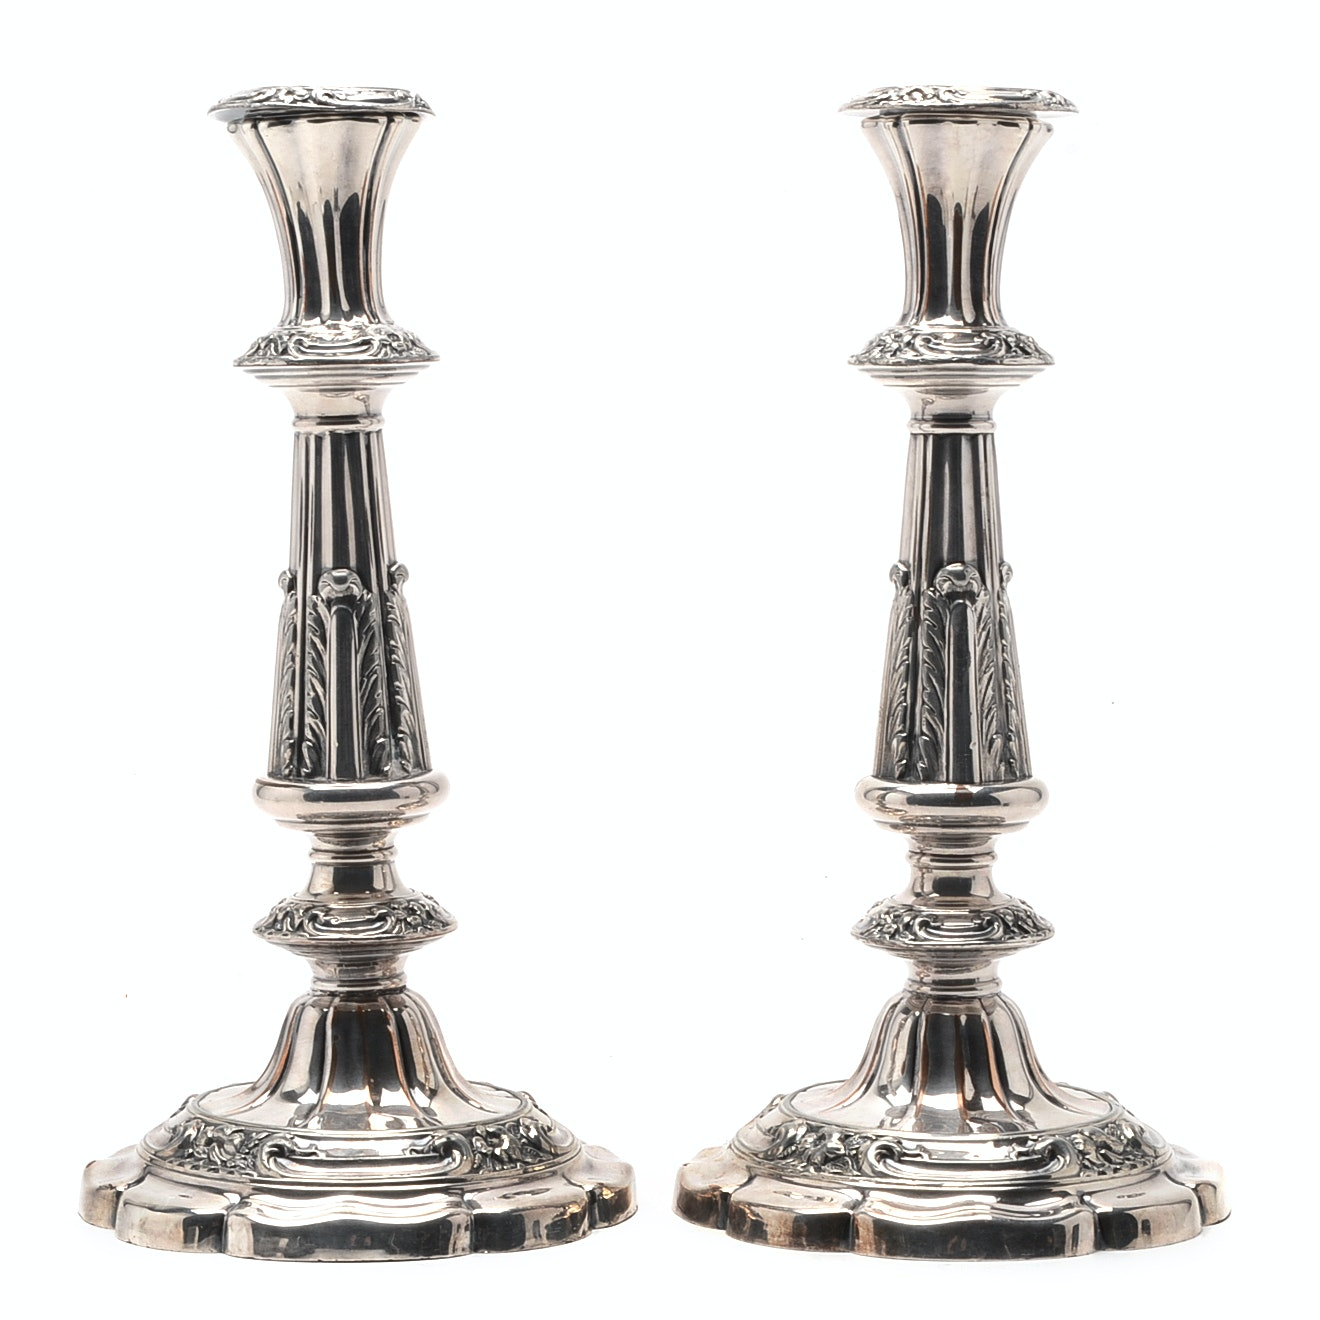 Pair of Vintage Silver Plate Candlestick